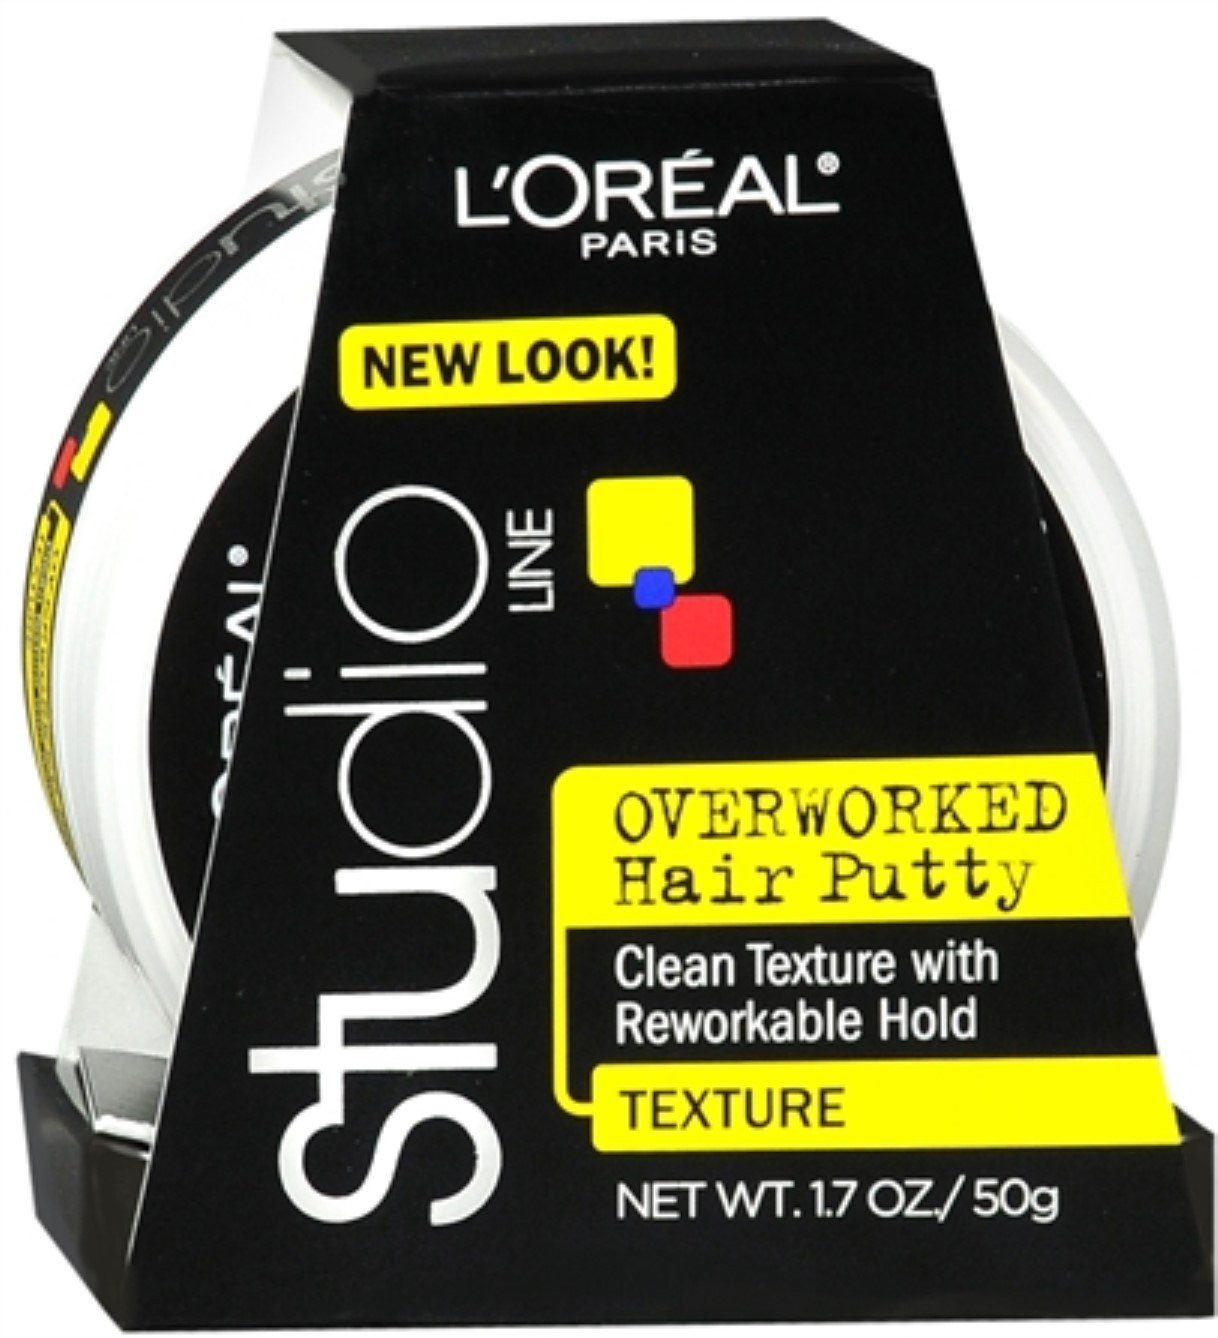 Studio Hair Putty Size 1.7z L'Oreal Studio Line Hair Putty by L'Oreal Paris